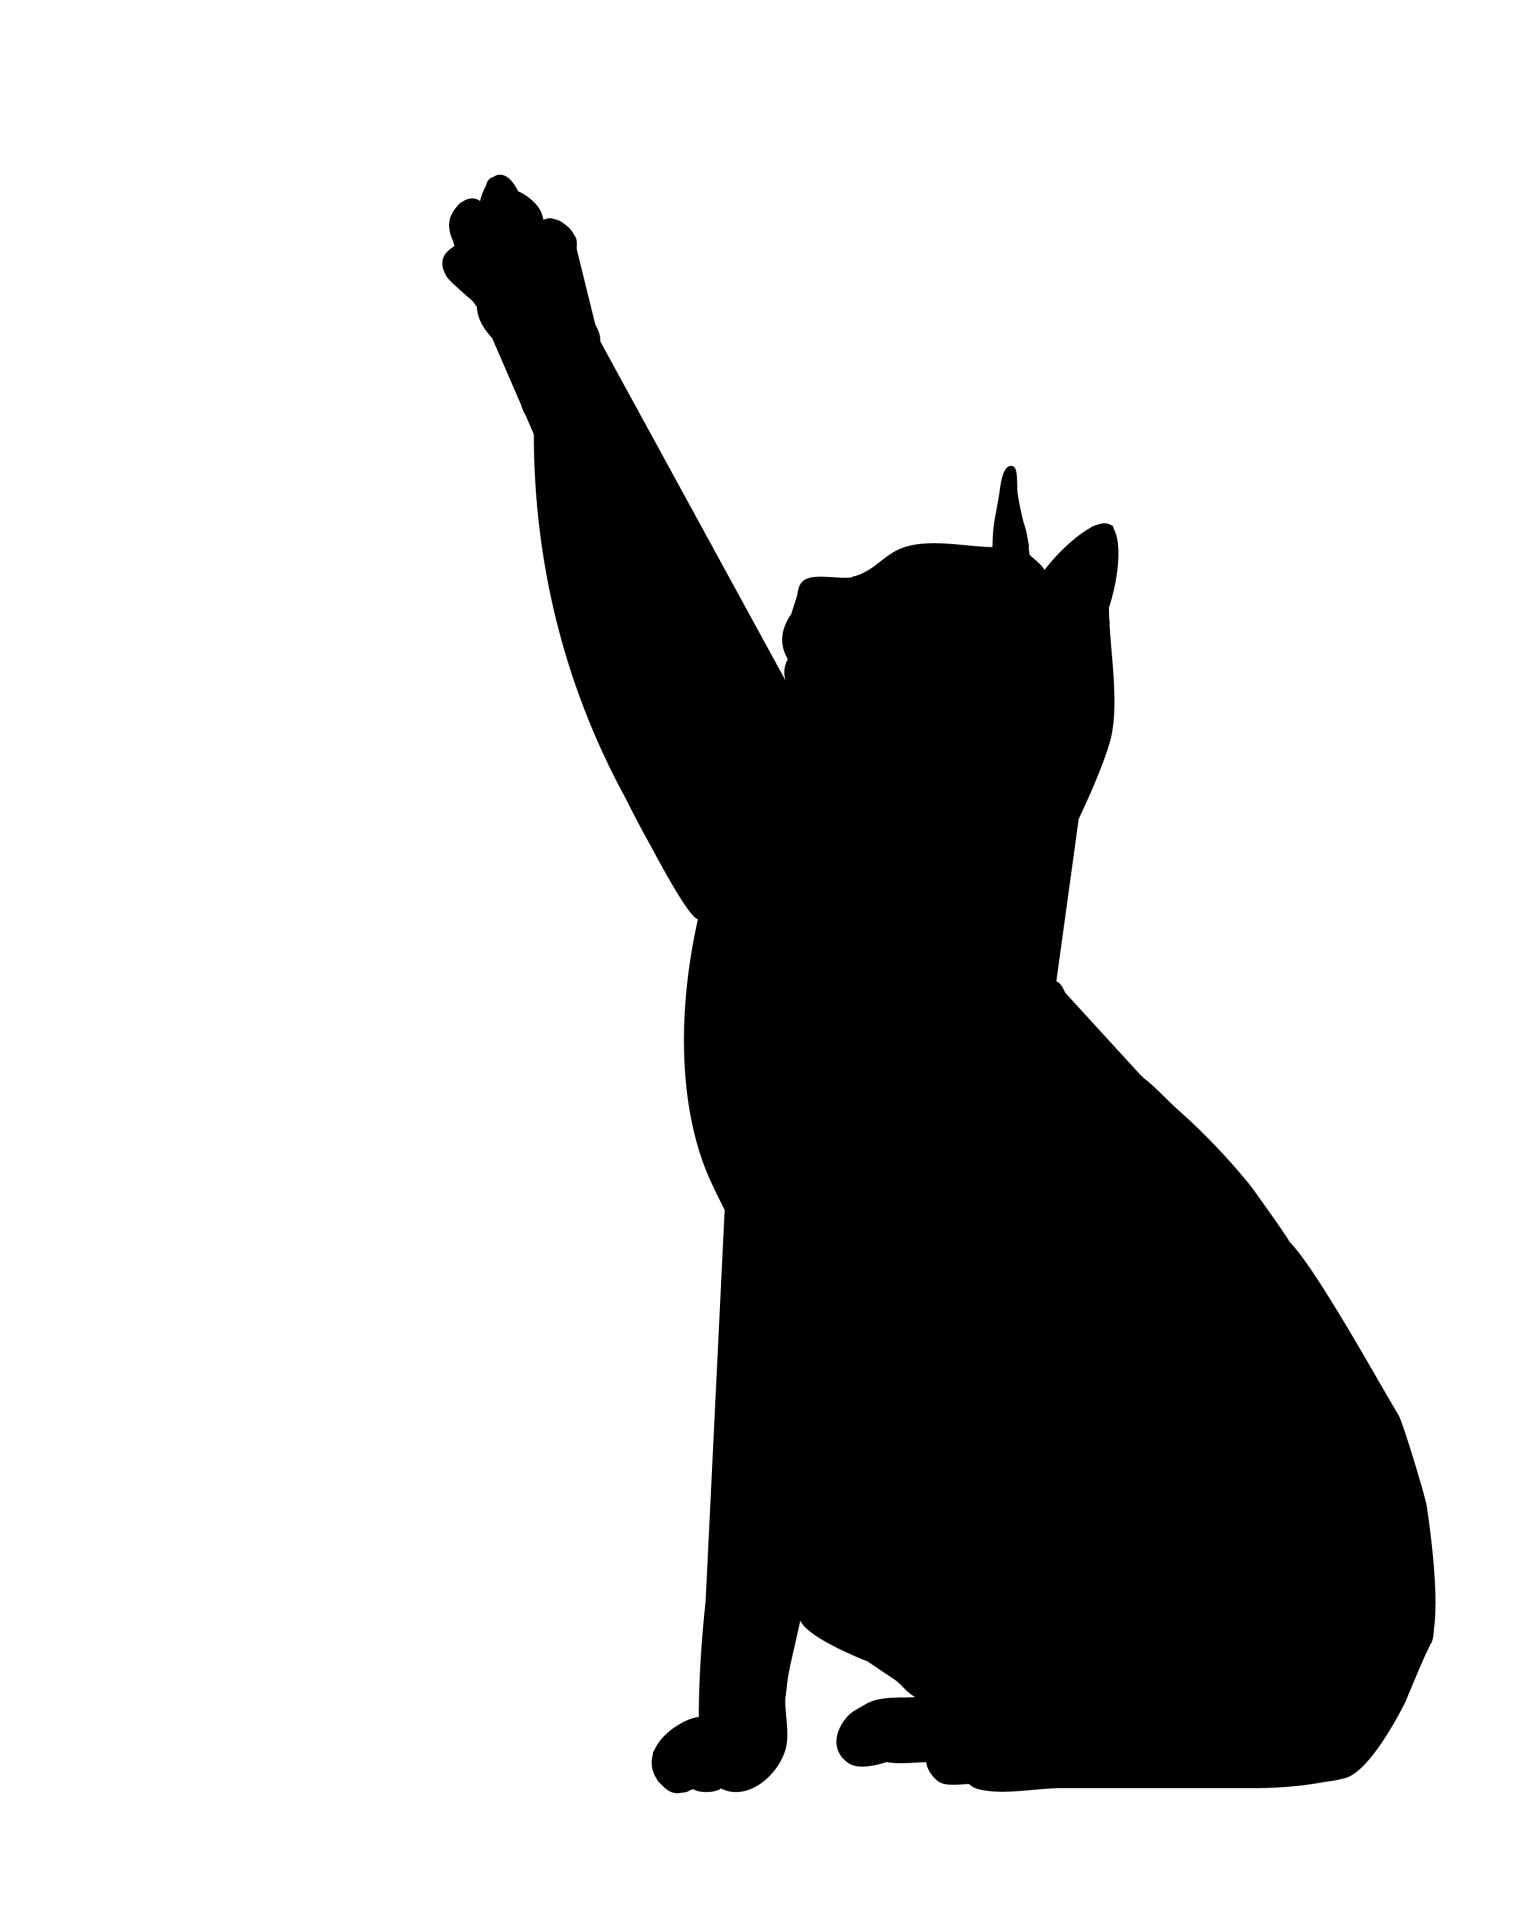 1532x1919 Cat Stretch Black Silhouette Free Stock Photo